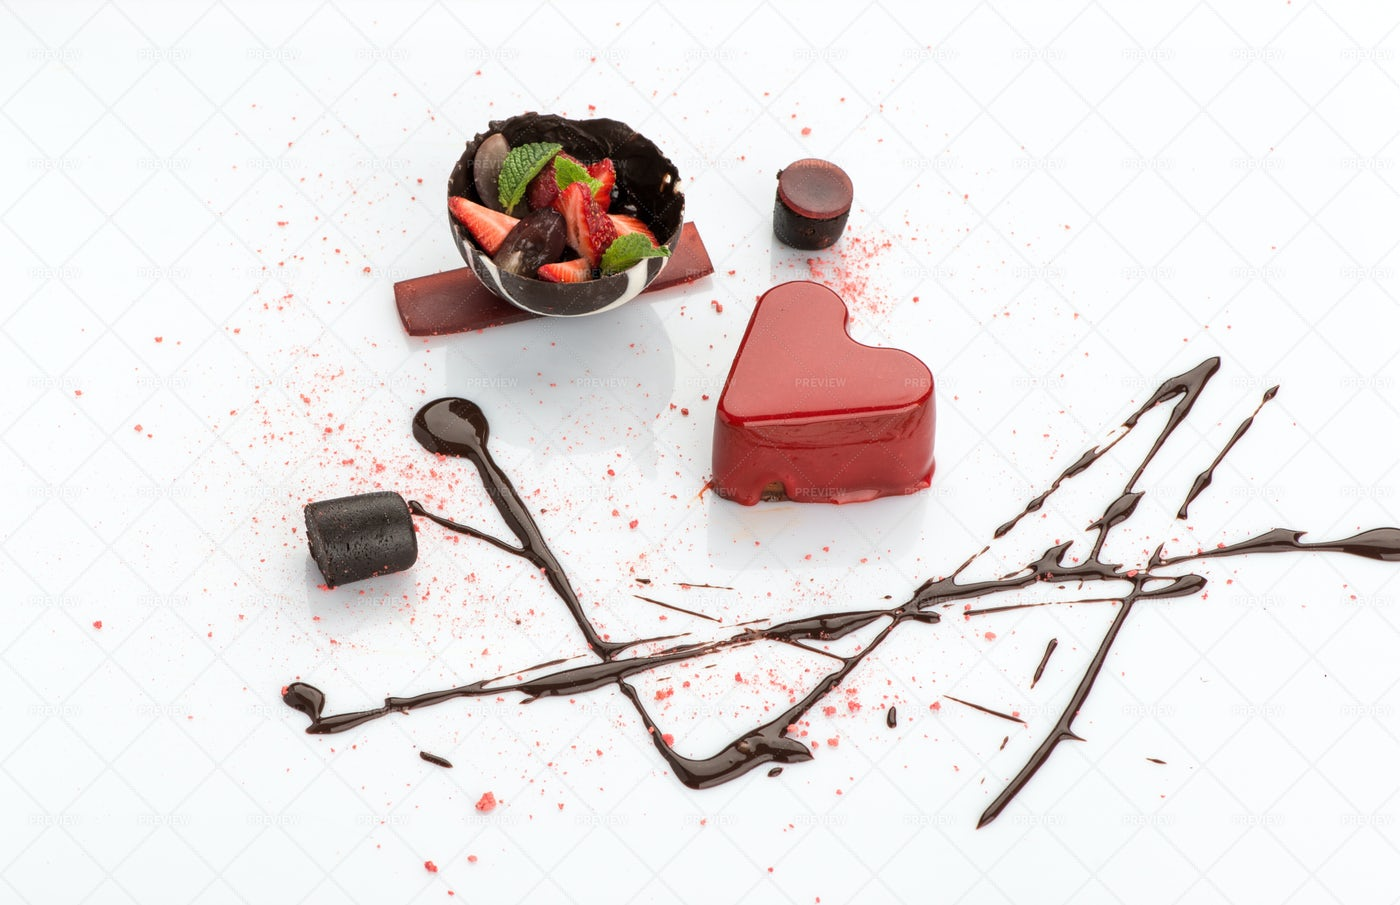 Sweets On A White Surface: Stock Photos